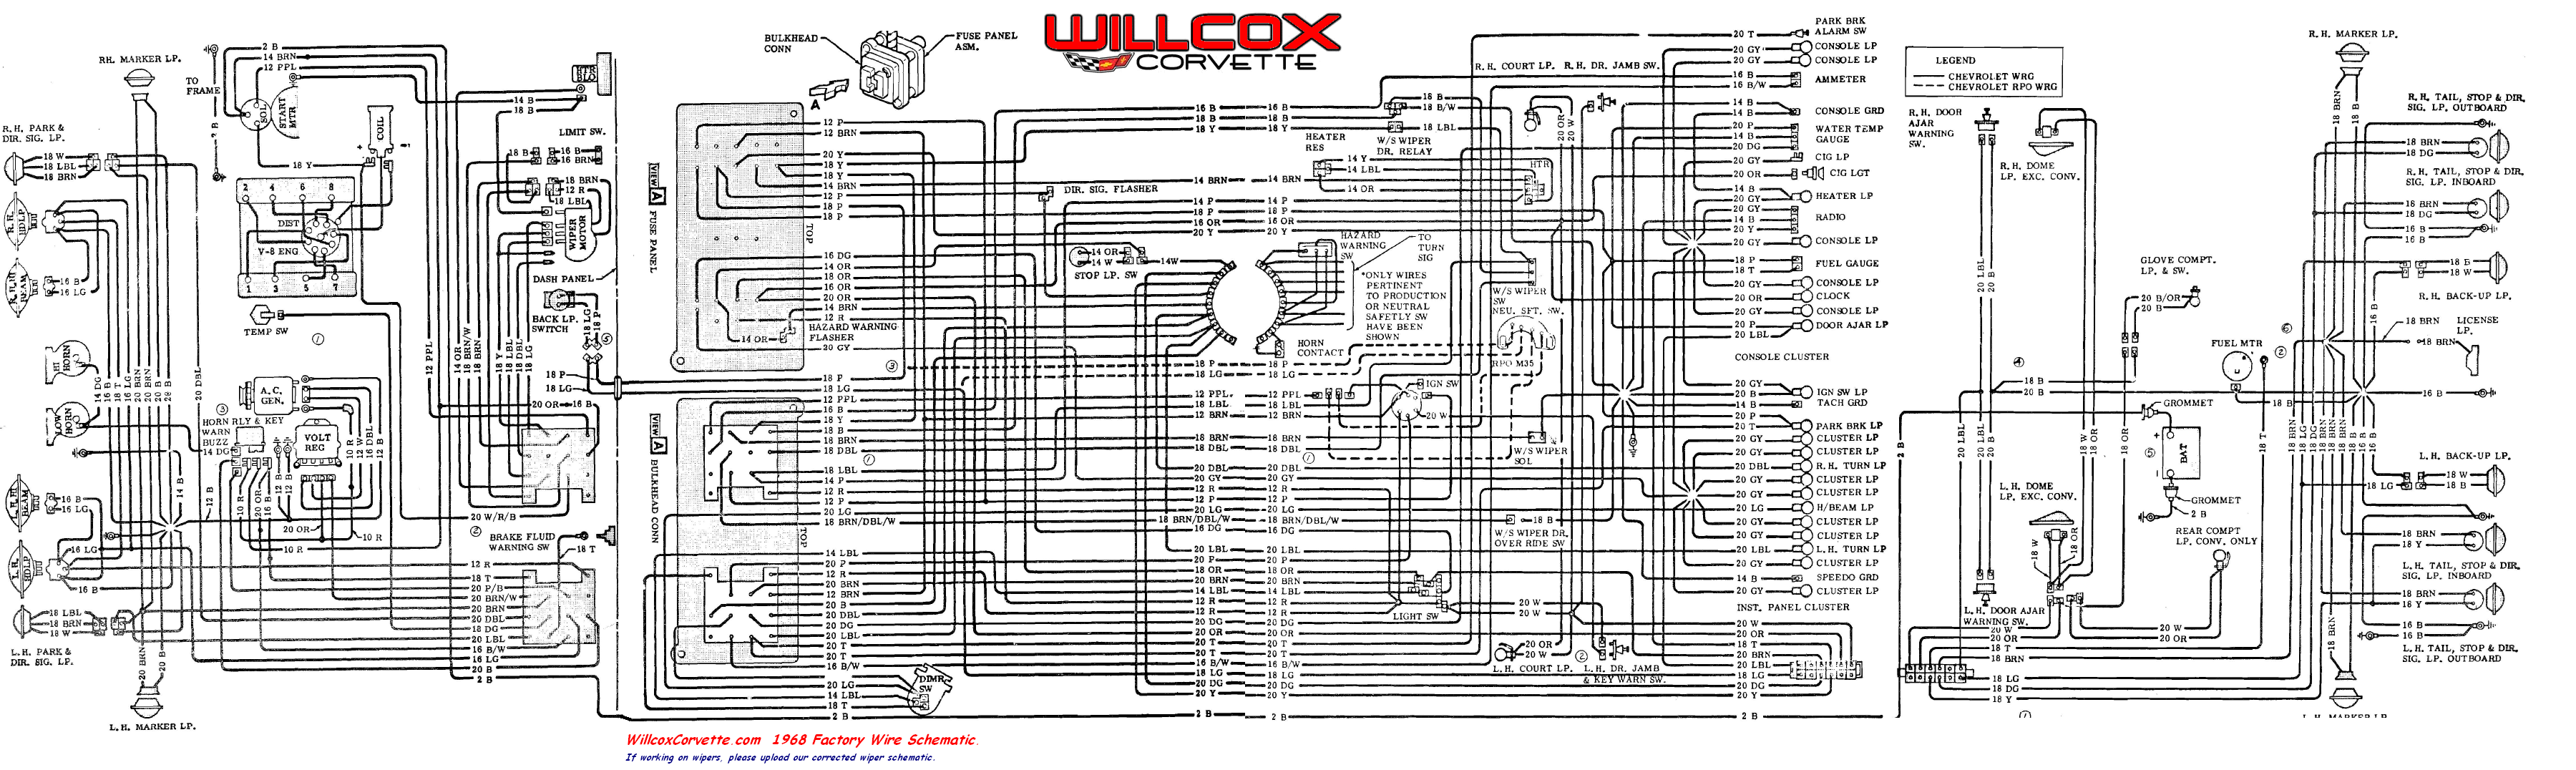 68 Corvette Dash Wiring Diagram Free Download - top wiring diagram gallery  power-outletbest - power-outletbest.aiellopresidente.it | 1965 Corvette Instrument Wiring Diagram |  | diagram database